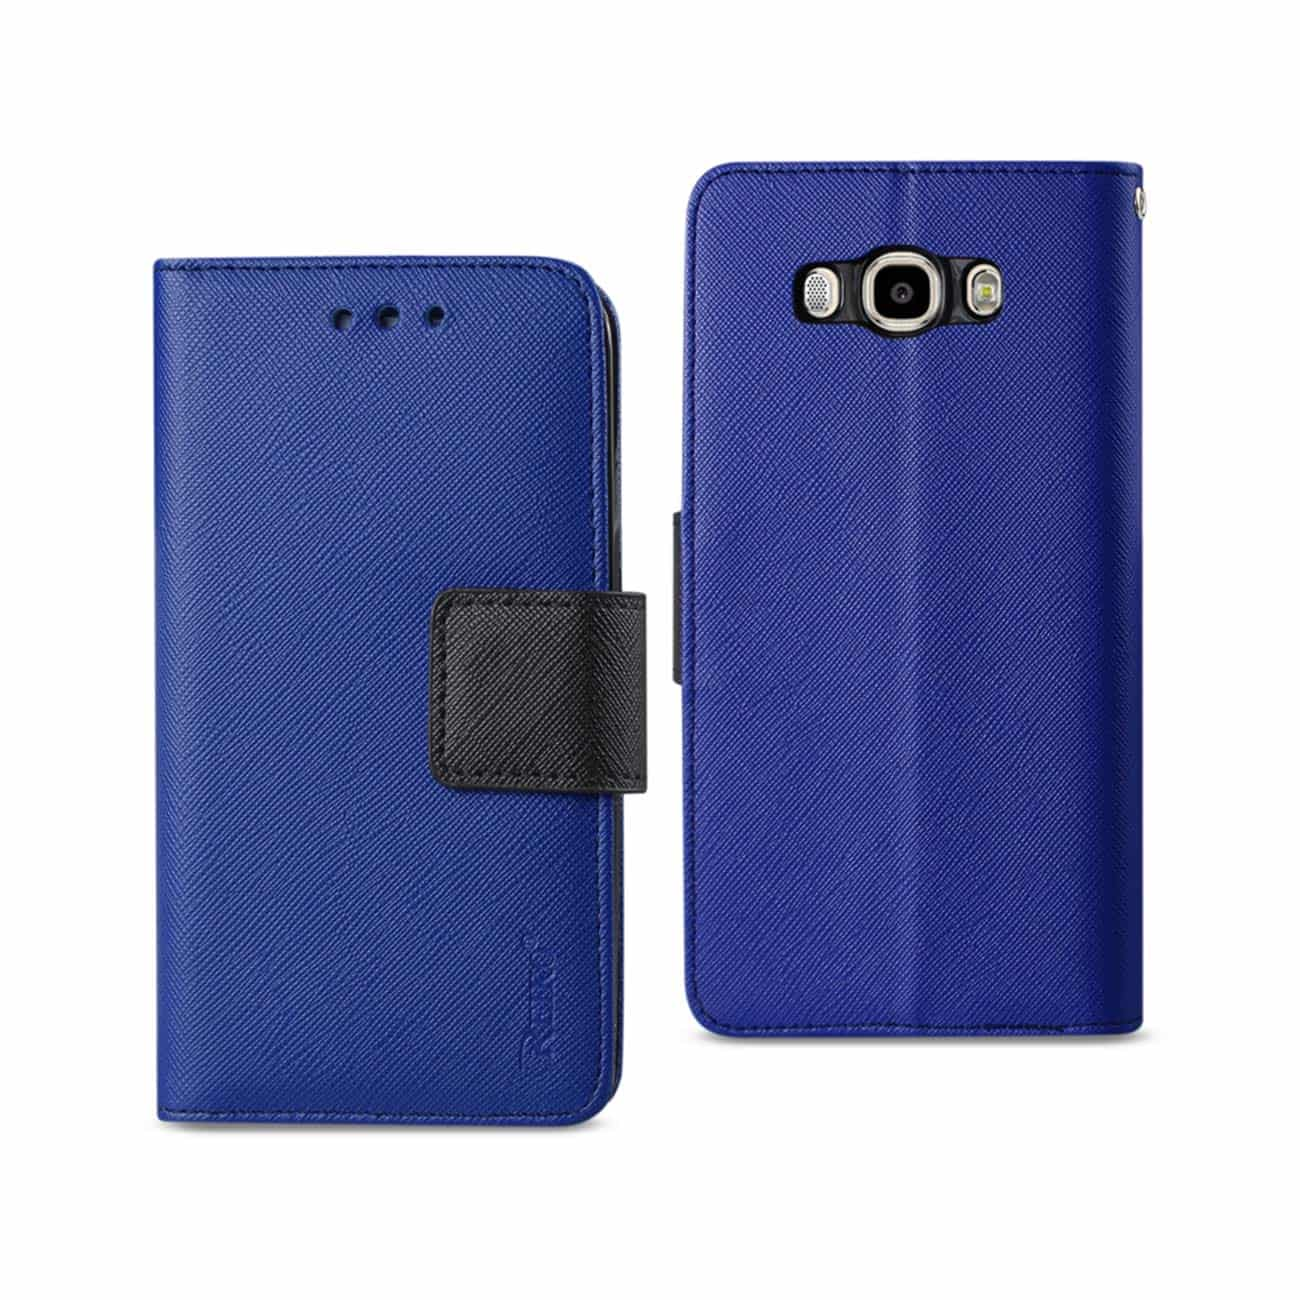 SAMSUNG GALAXY J7 (2016) 3-IN-1 WALLET CASE IN NAVY